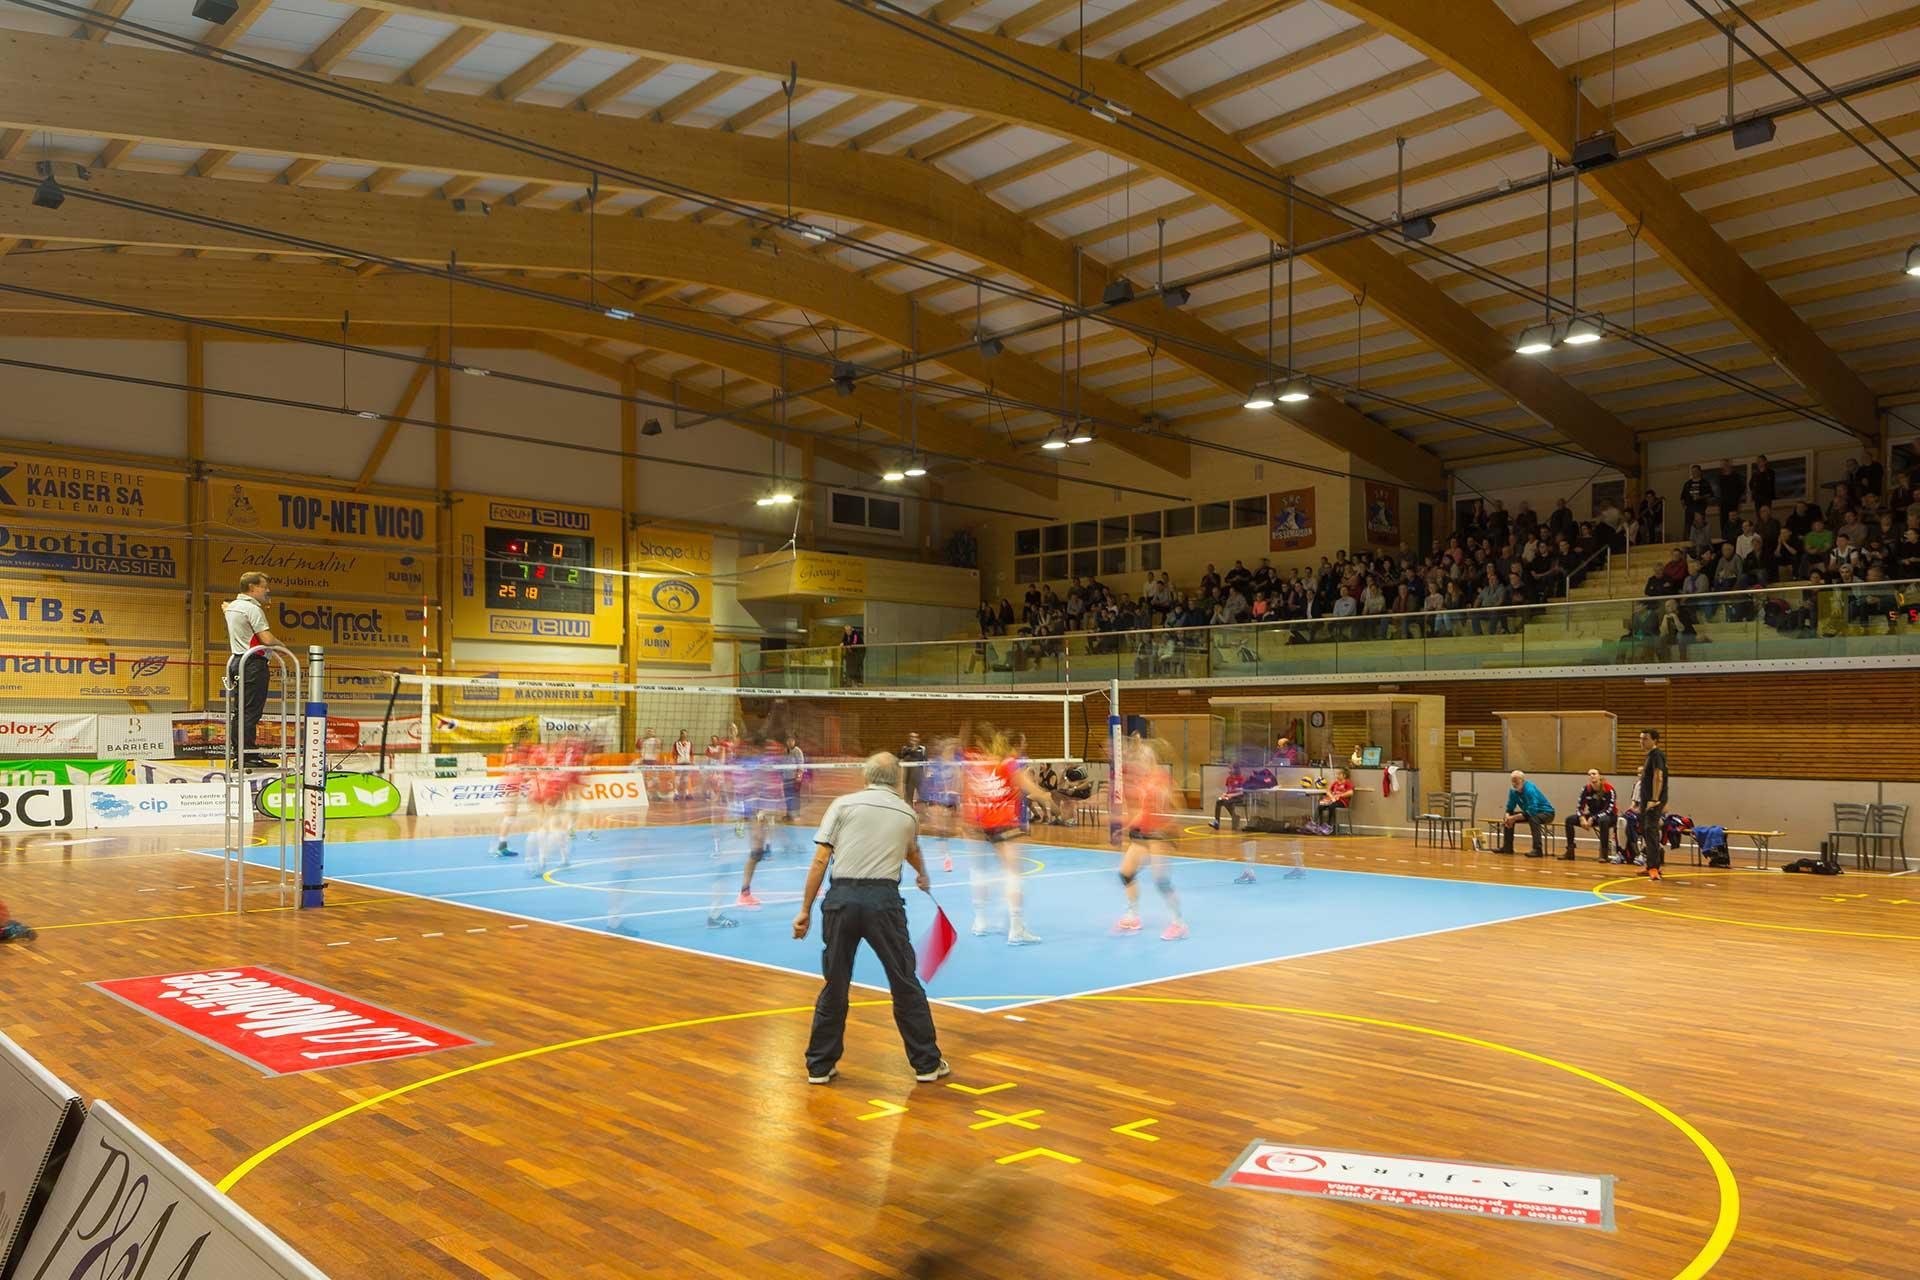 OMNIstar delivers the necessary light quality and visual comfort for Rossemaison sports hall